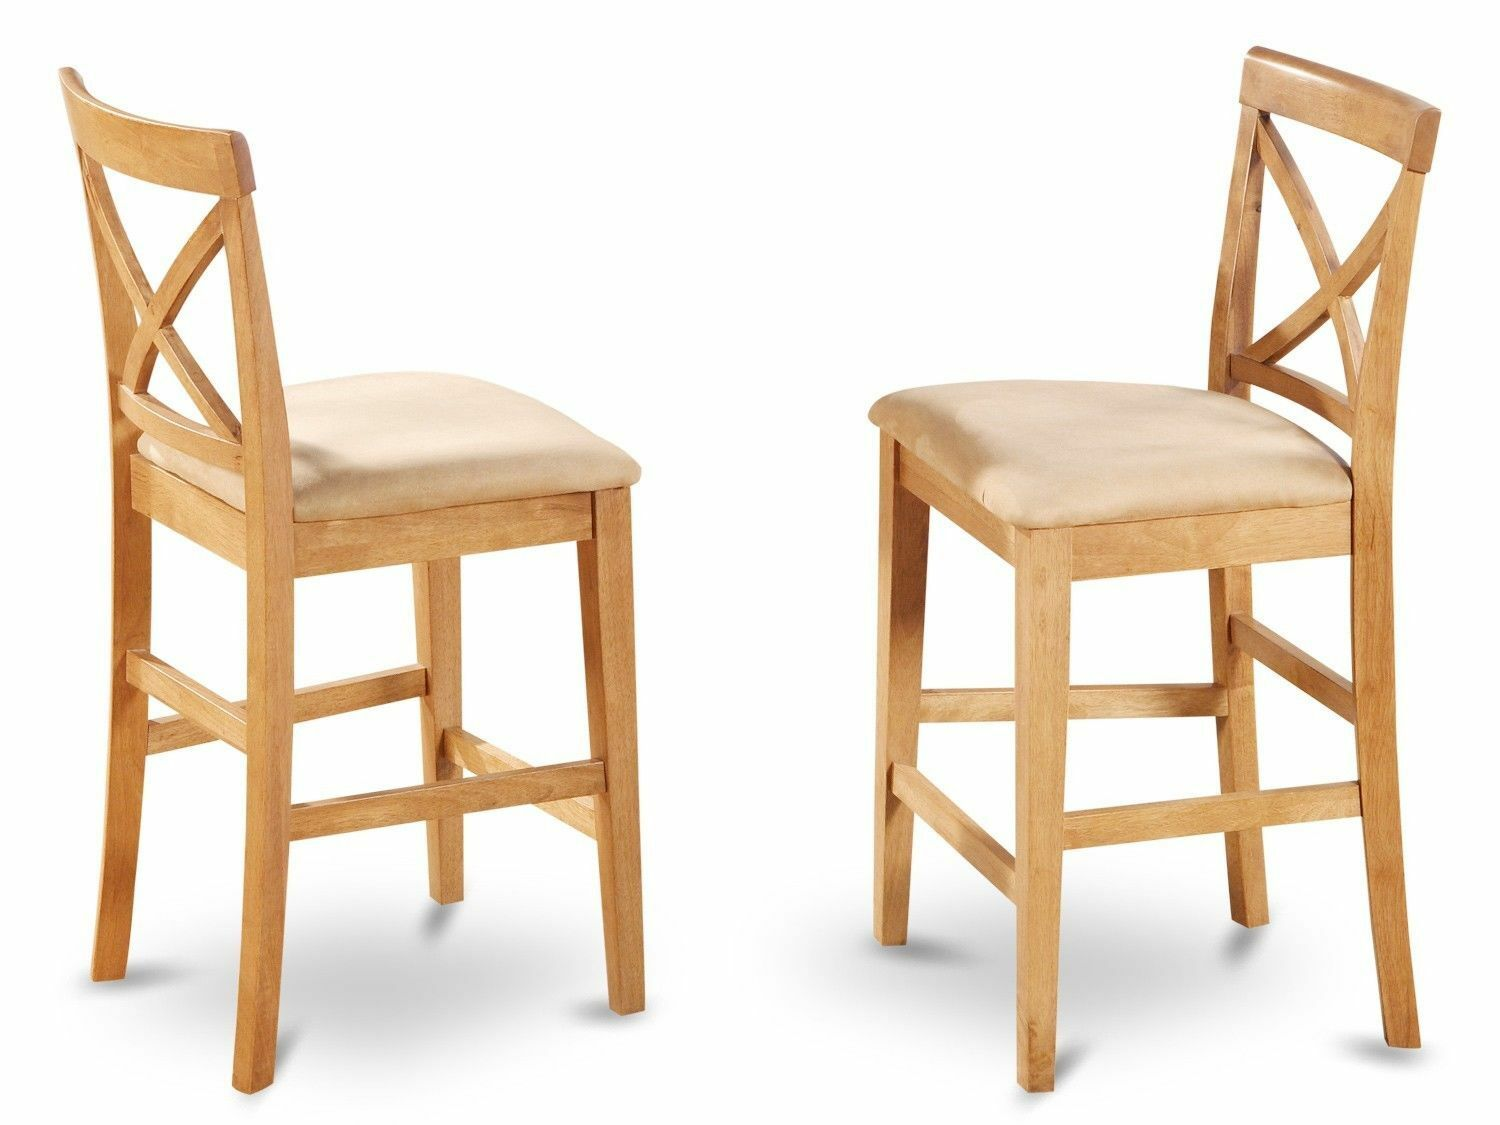 Set Of 2 Bar Stools Kitchen Counter Height Chairs W Padded Seat In Light Oak 1 9free Shipping